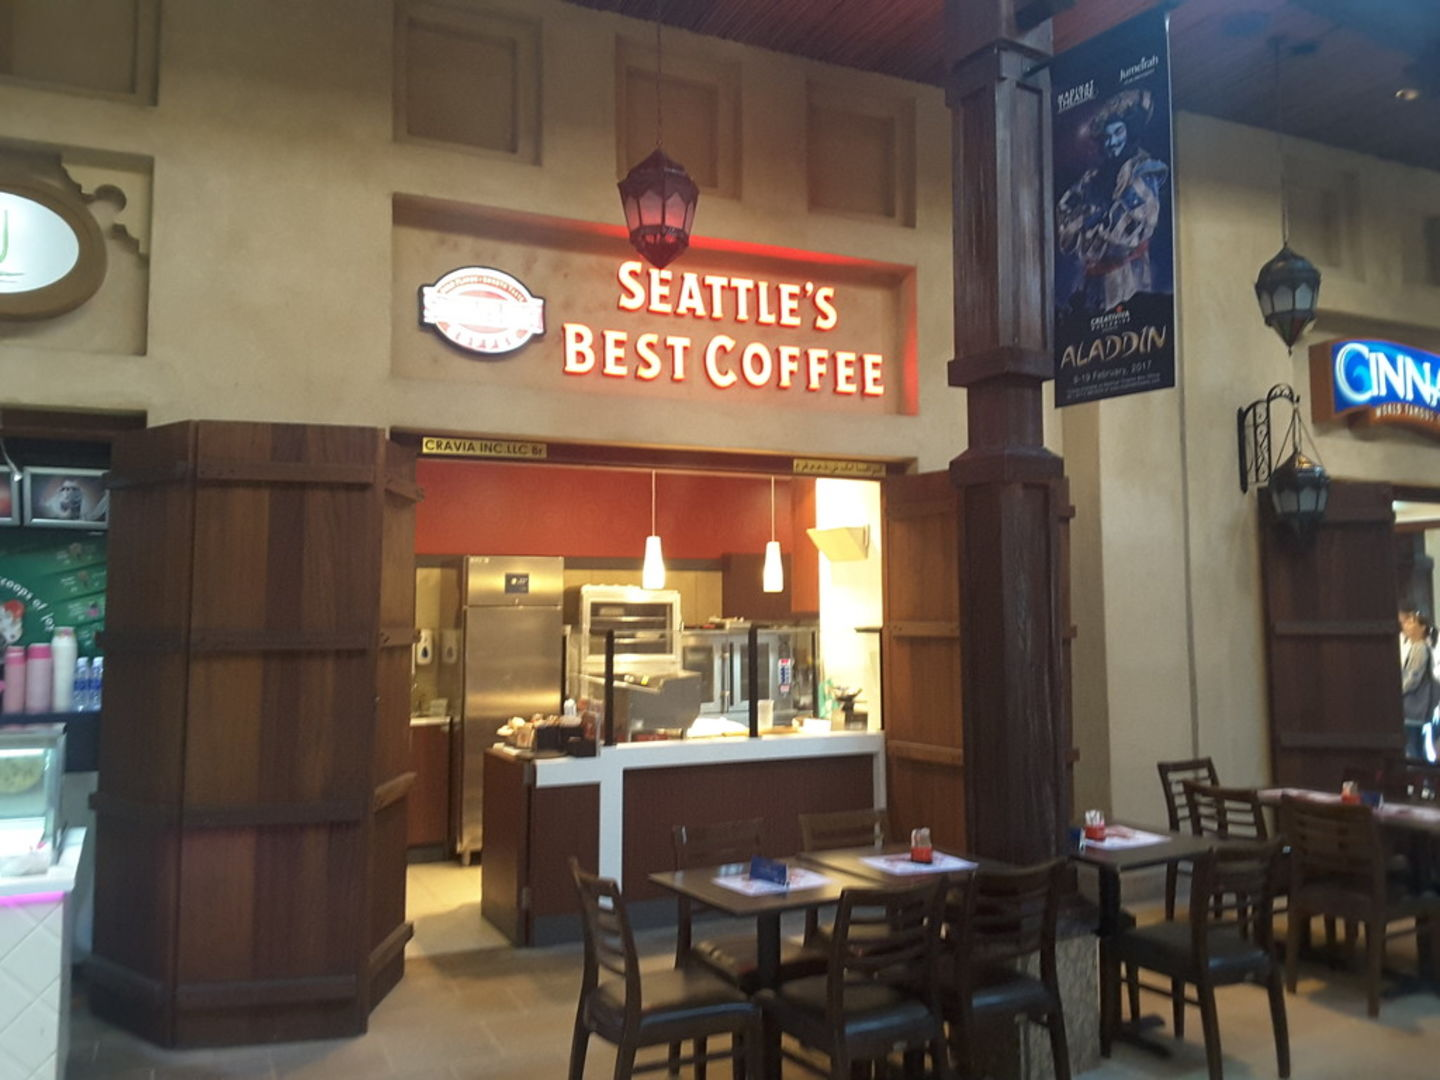 HiDubai-business-seattles-best-coffee-food-beverage-coffee-shops-al-sufouh-1-dubai-2